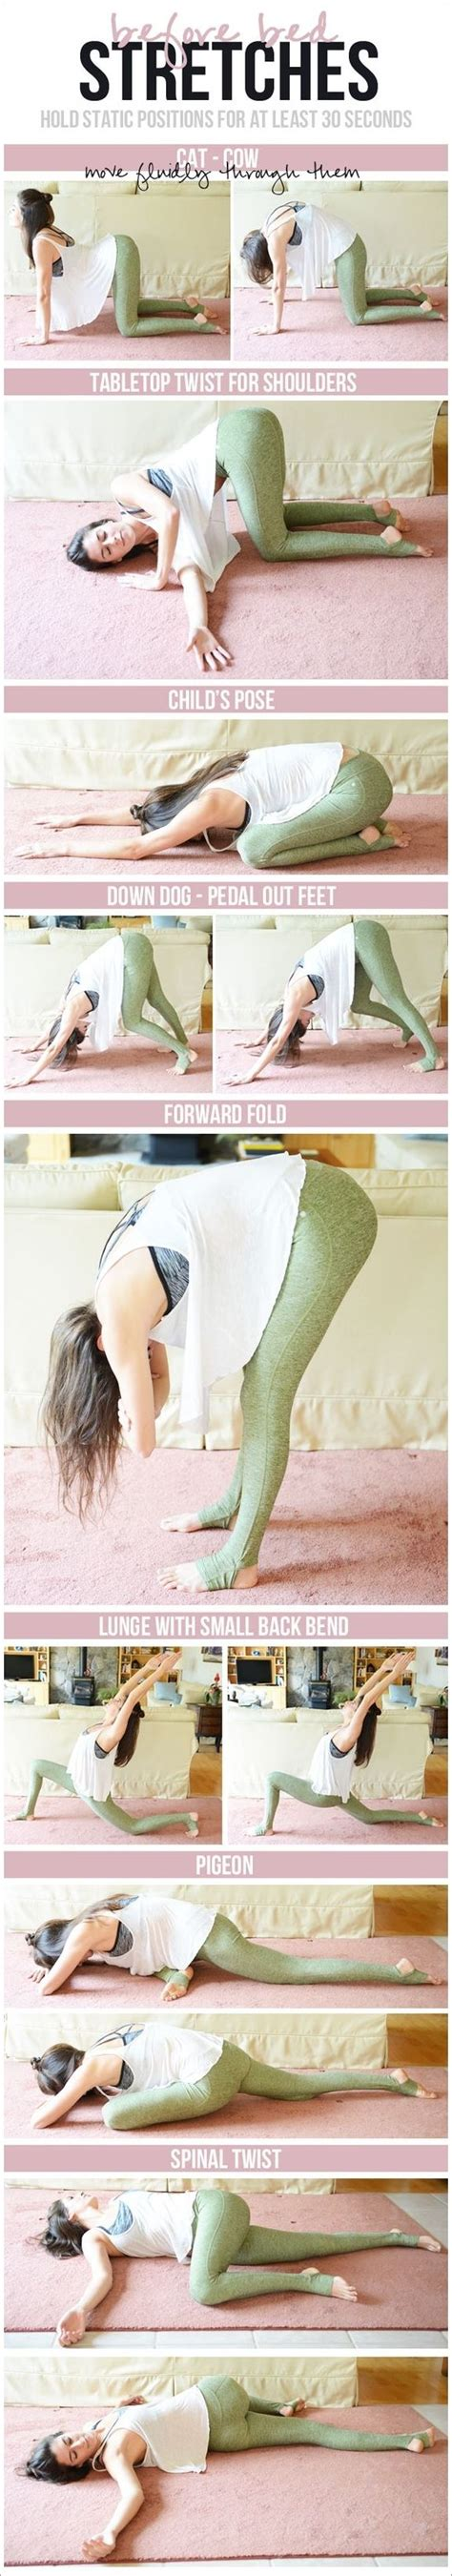 before bed stretches 25 best ideas about stretches before workout on pinterest